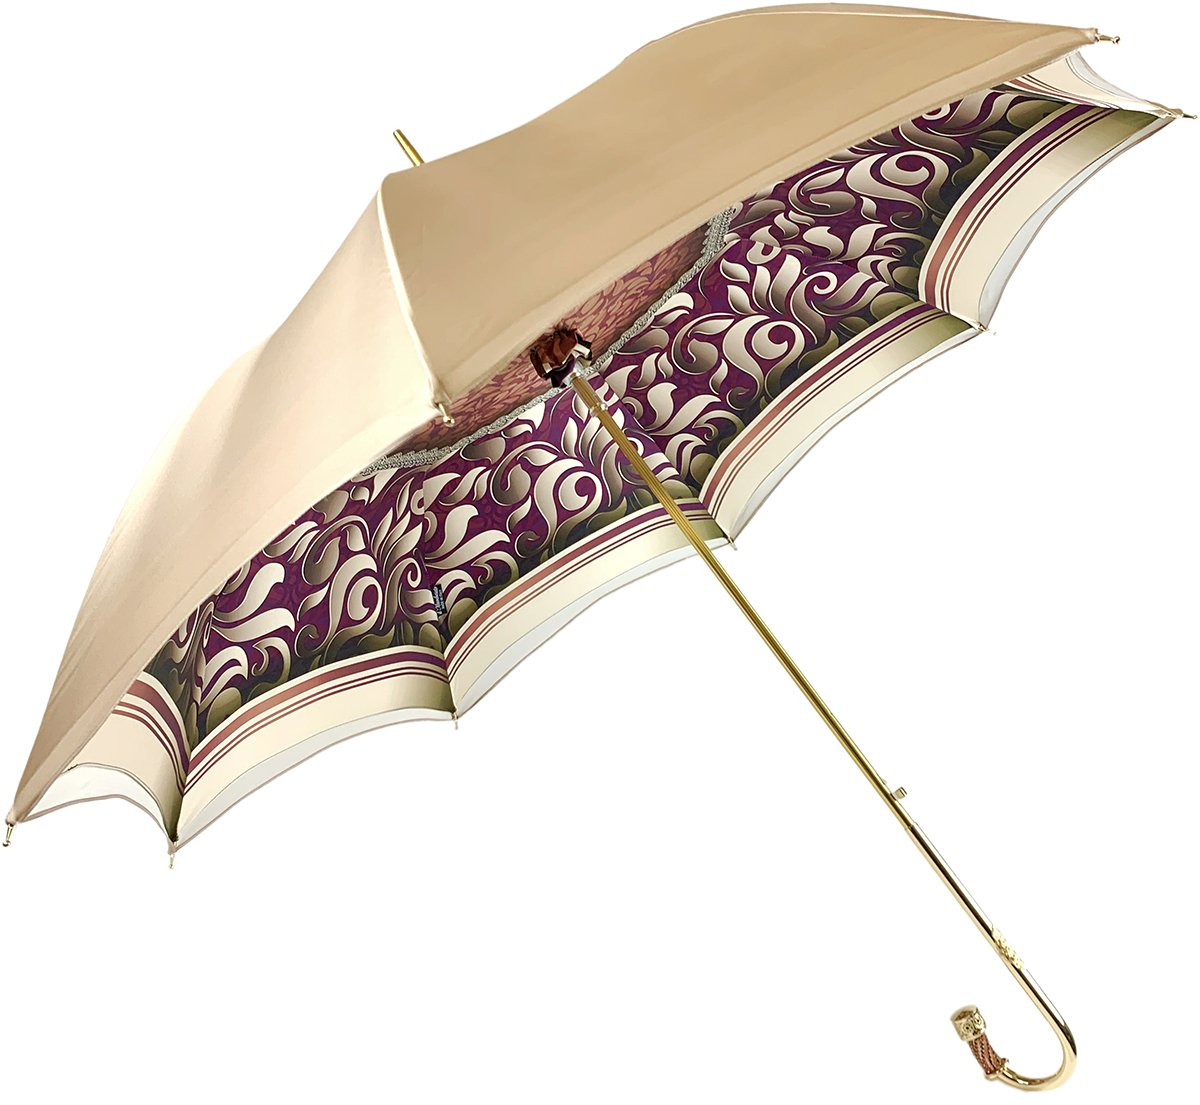 Handmade Cream Umbrella - Abstract Design - IL MARCHESATO LUXURY UMBRELLAS, CANES AND SHOEHORNS